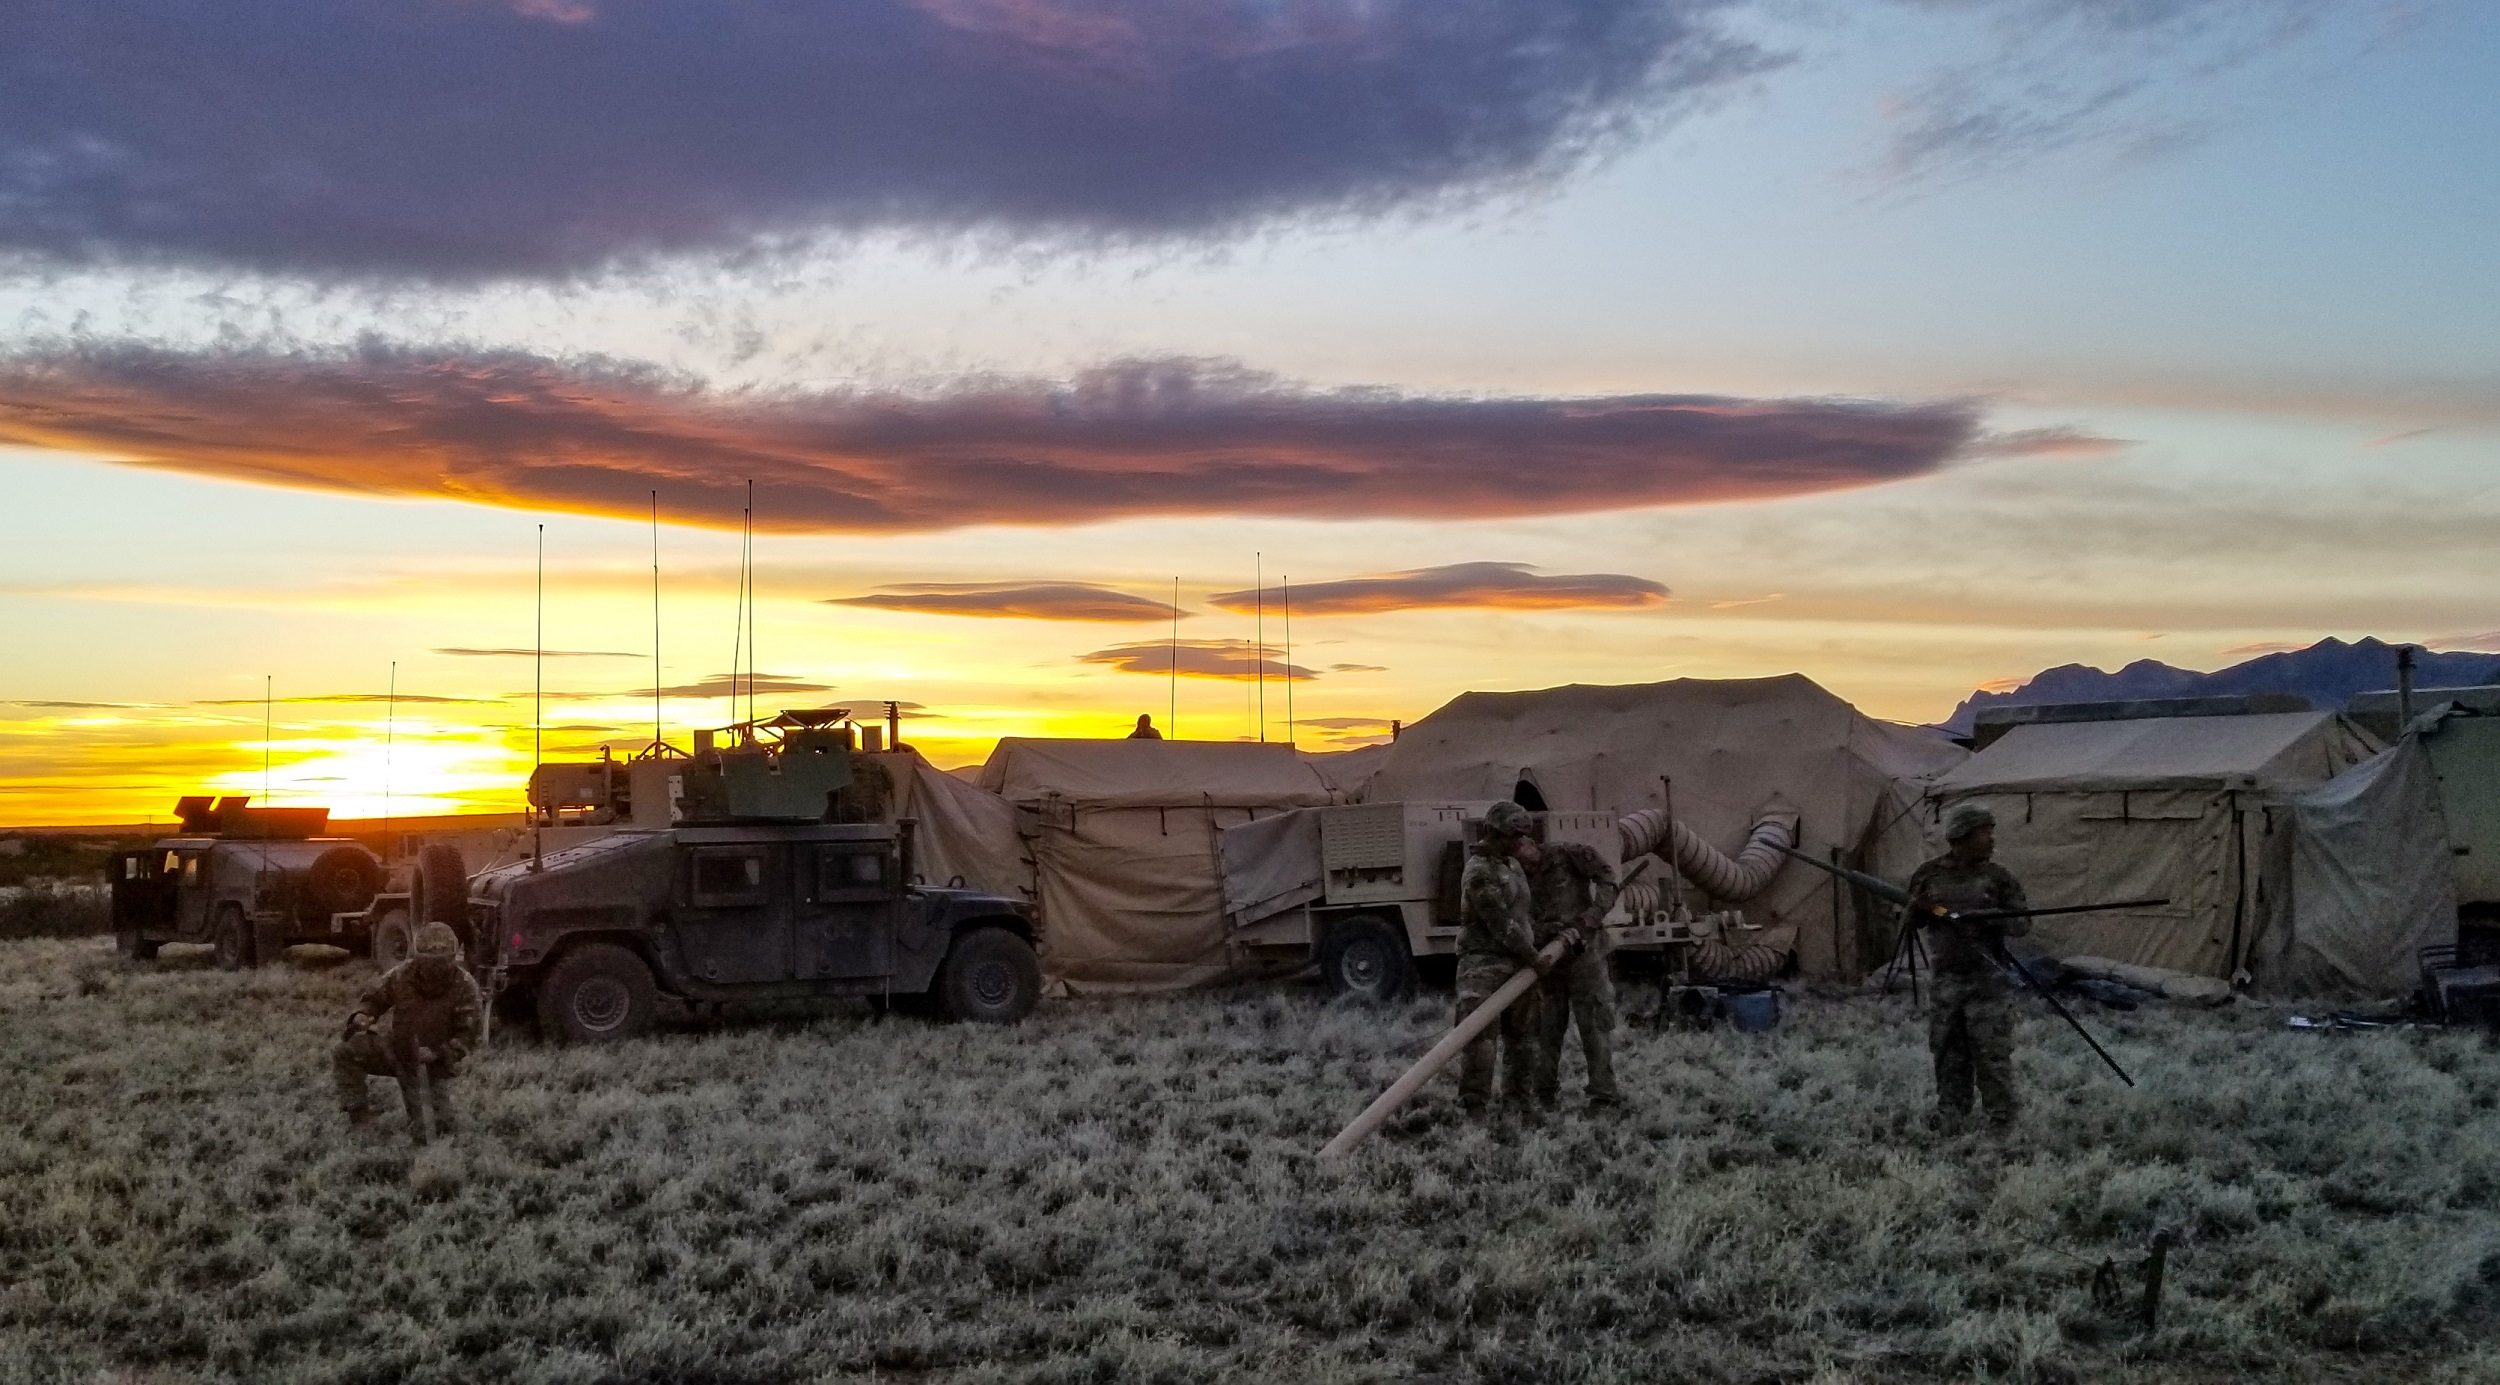 Soldiers assigned to Headquarters Company, 1st Battalion, 155th Infantry Regiment, work to establish communications during a field training exercise near Camp McGregor, N.M., April 6, 2018. (U.S. Army National Guard photo by Sgt. Timothy Russell)